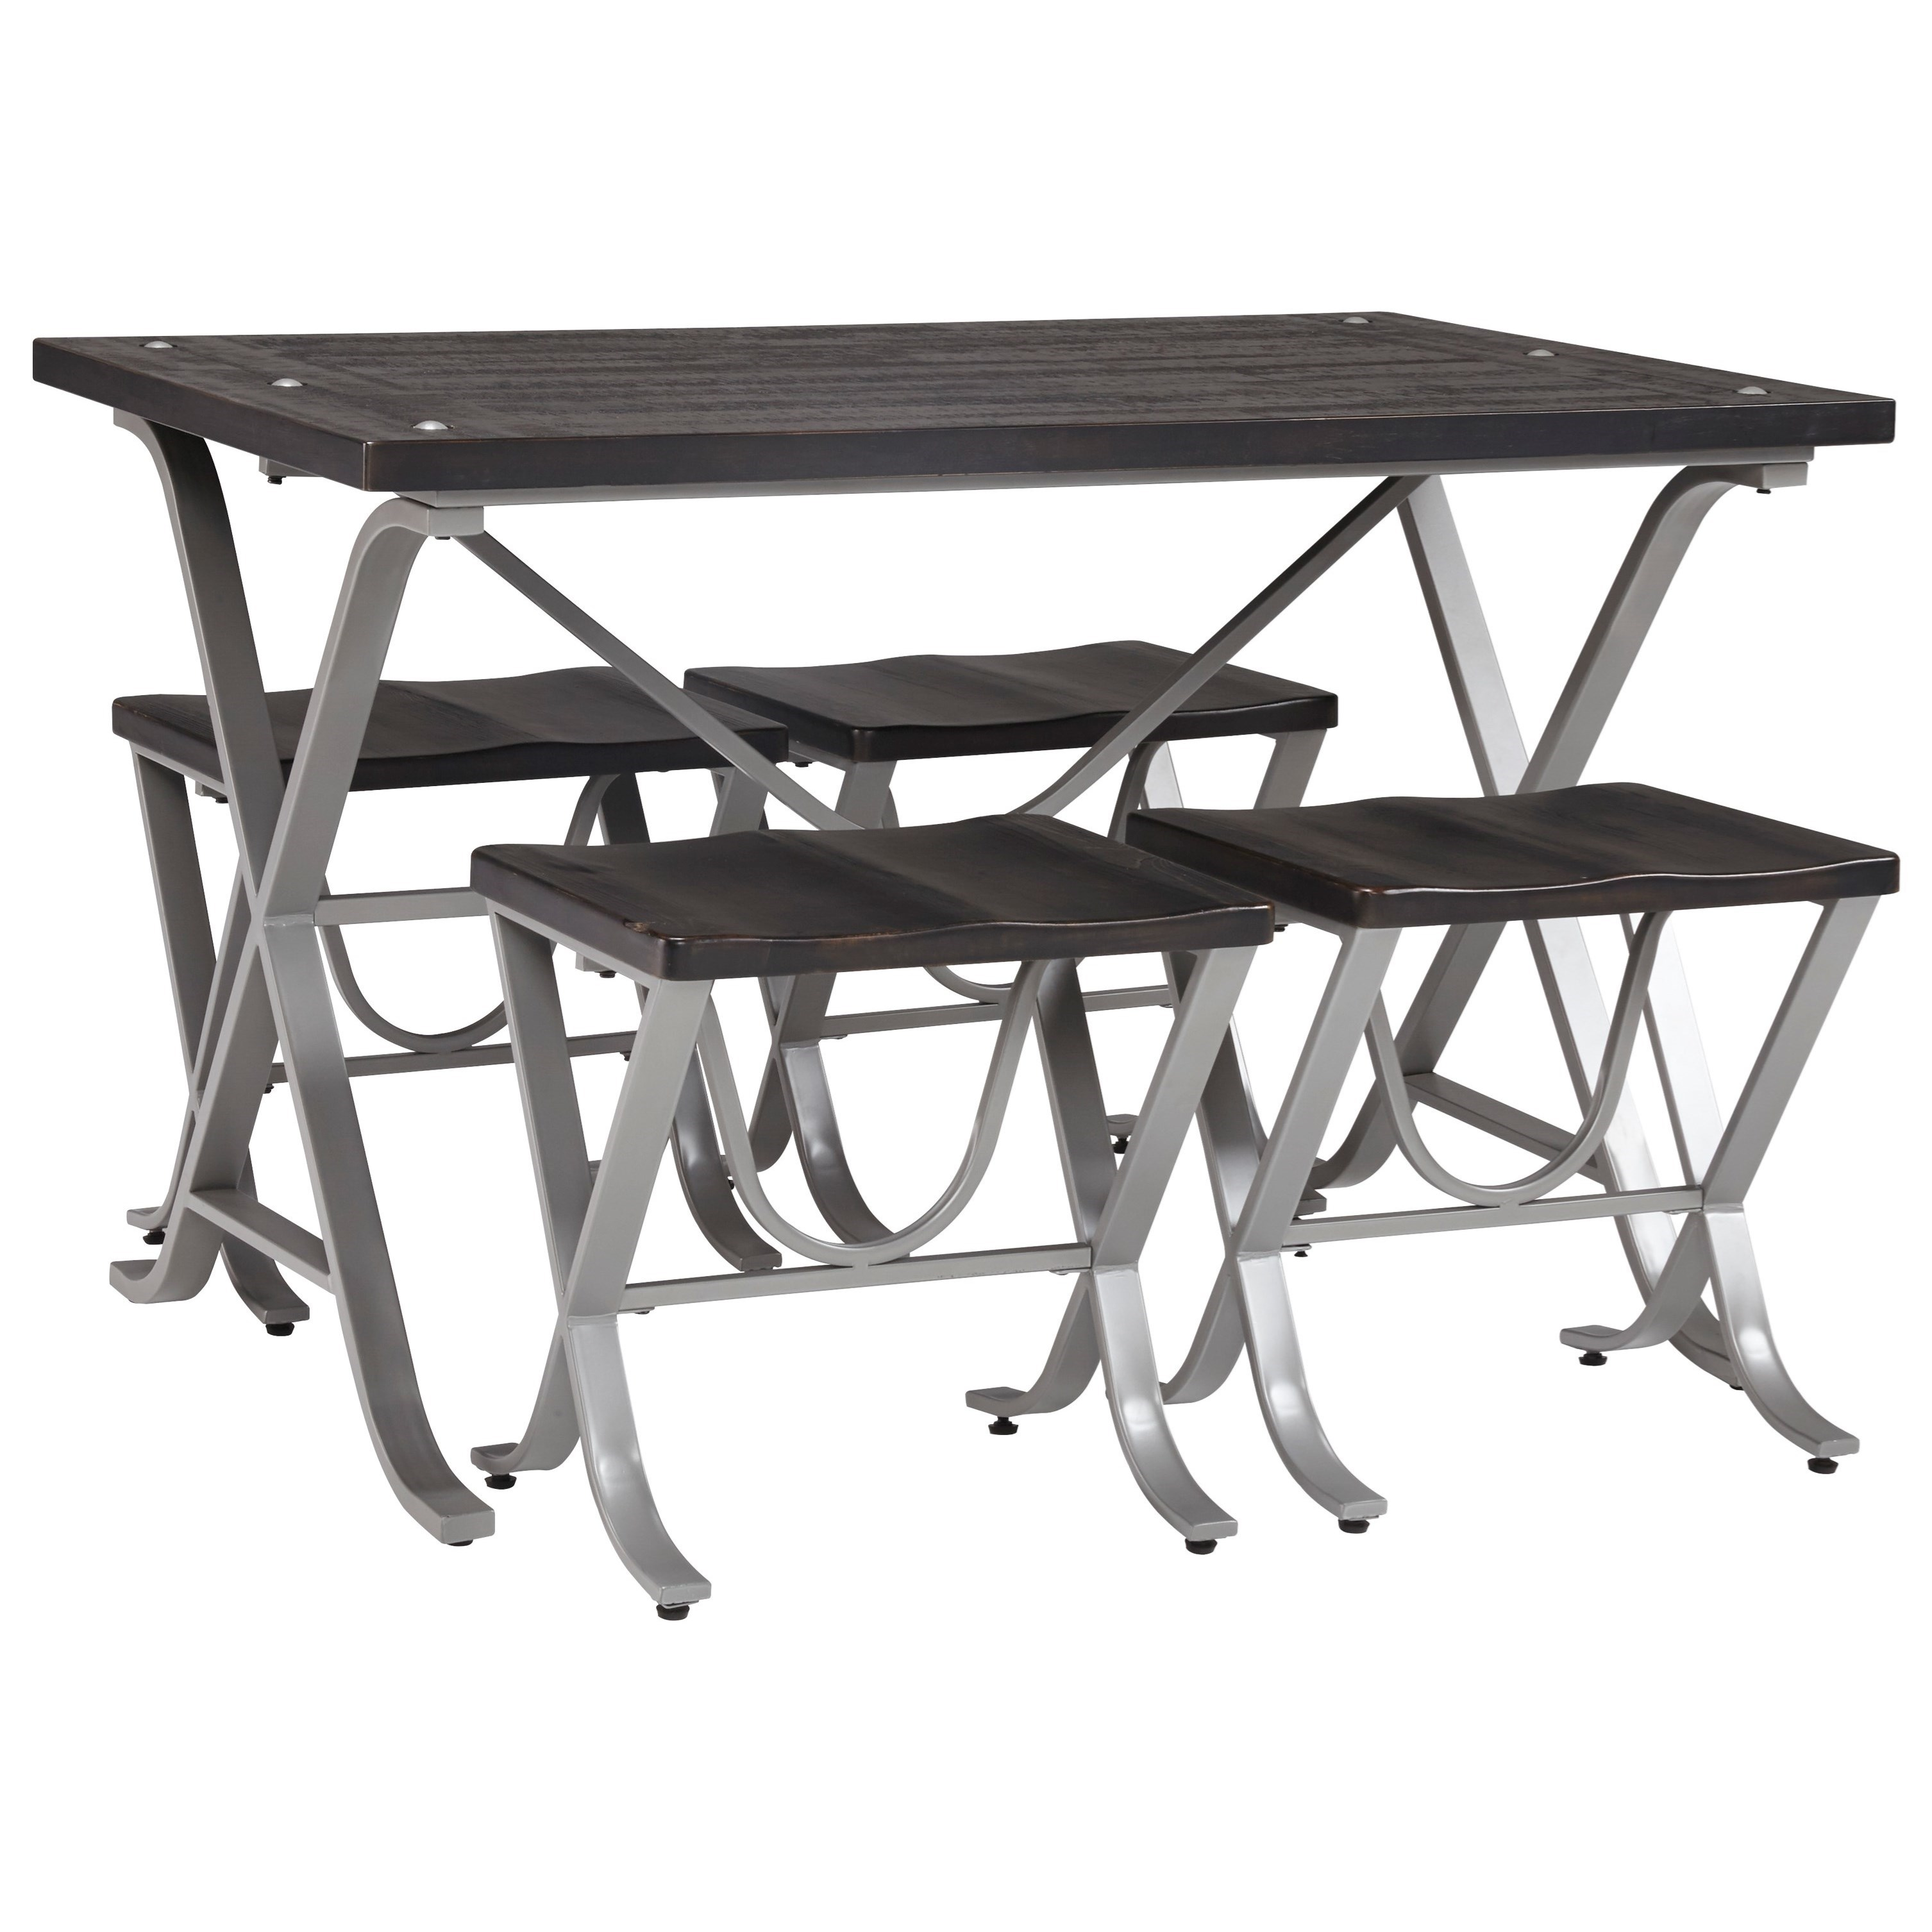 Signature design by ashley elistree d321 225 wood and for Furniture 321